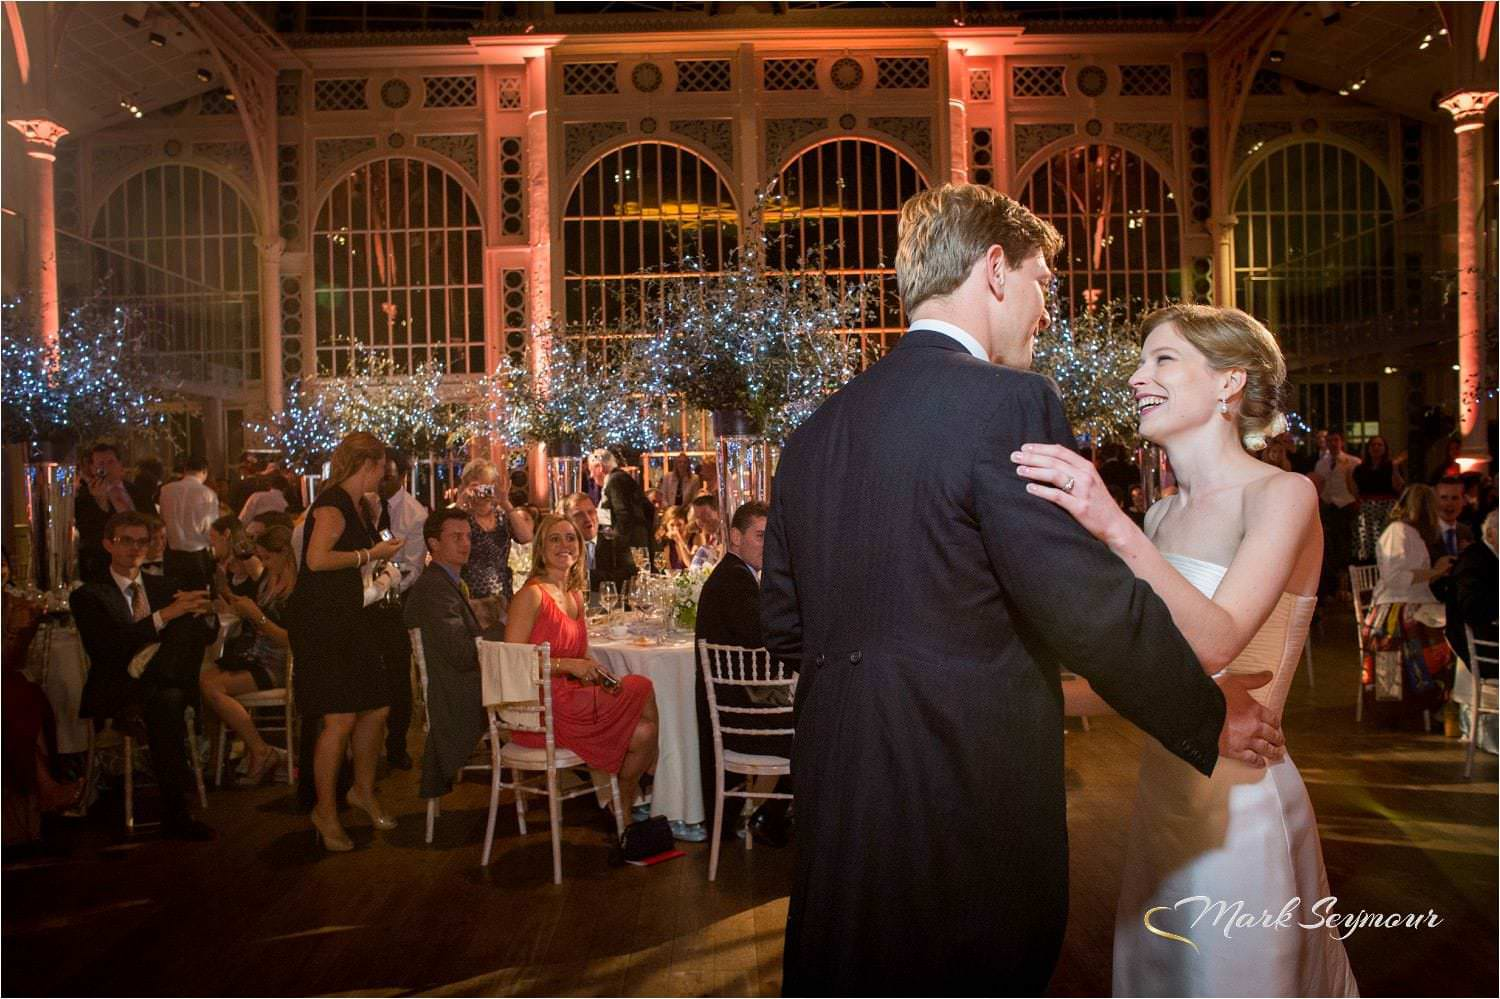 First dance at Royal Opera House